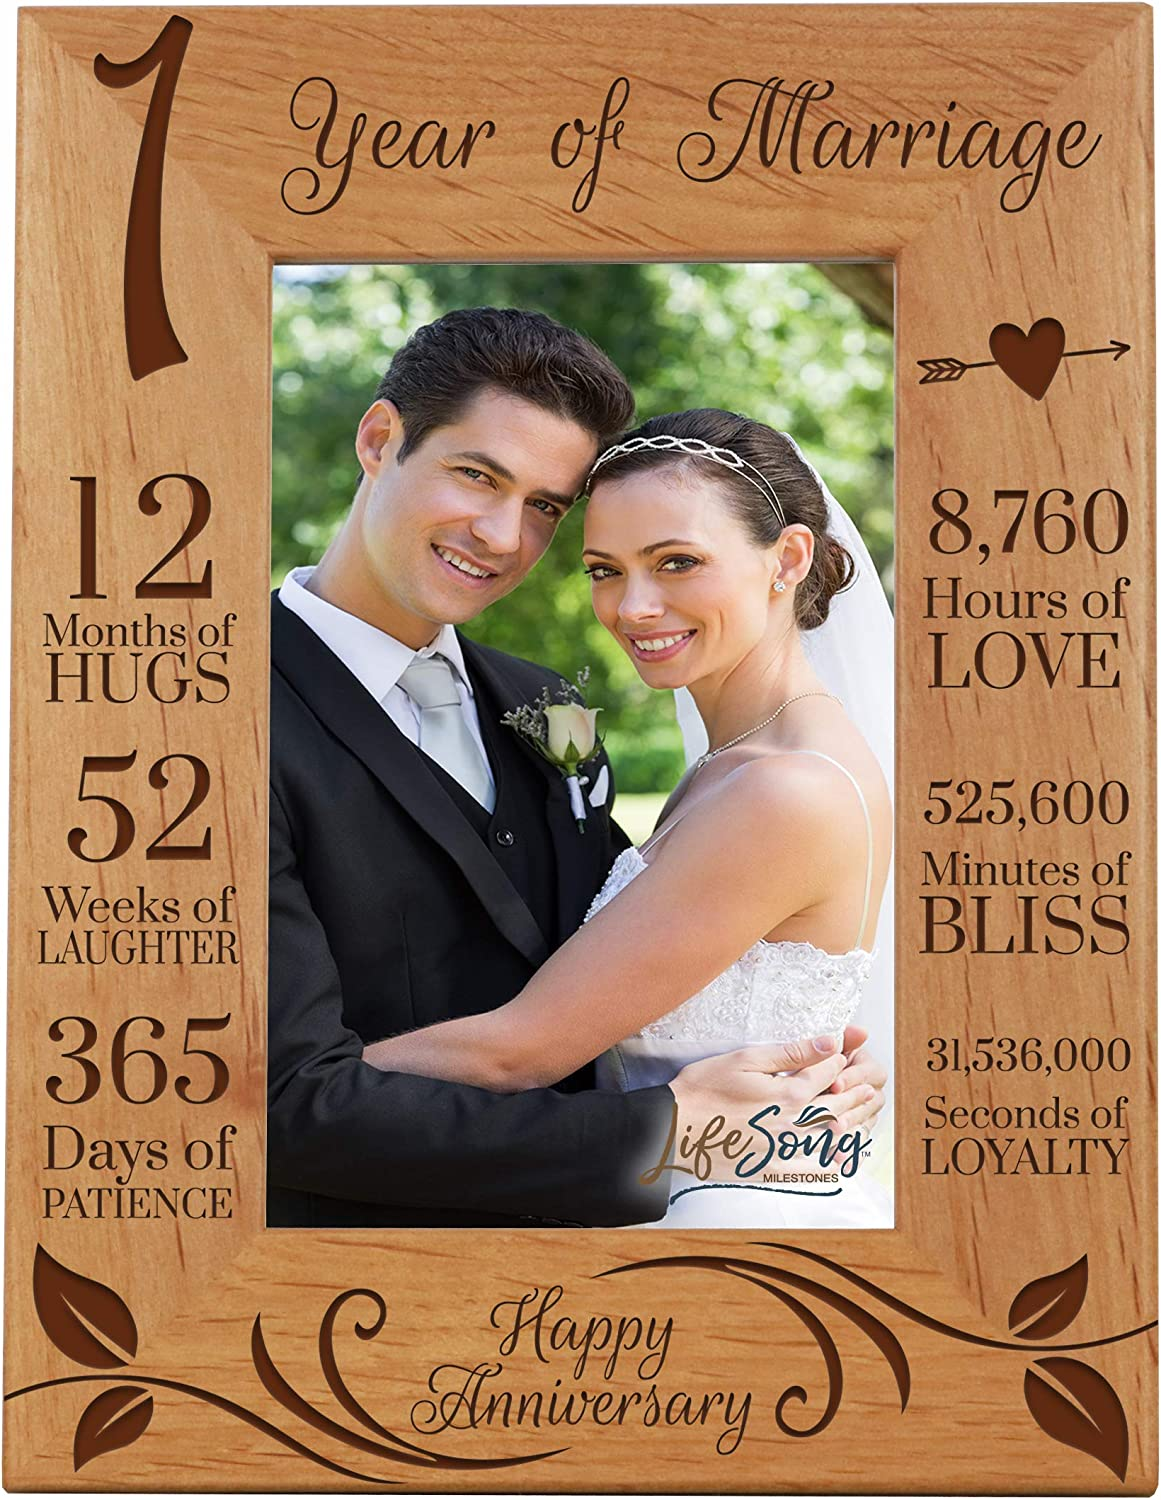 LifeSong Milestones 1st Anniversary Picture Frame 1 Year of Marriage - One Year Wedding Keepsake Gift for Parents Husband Wife him her Holds 4x6 Photo - Happy Anniversary (6.5x8.5)